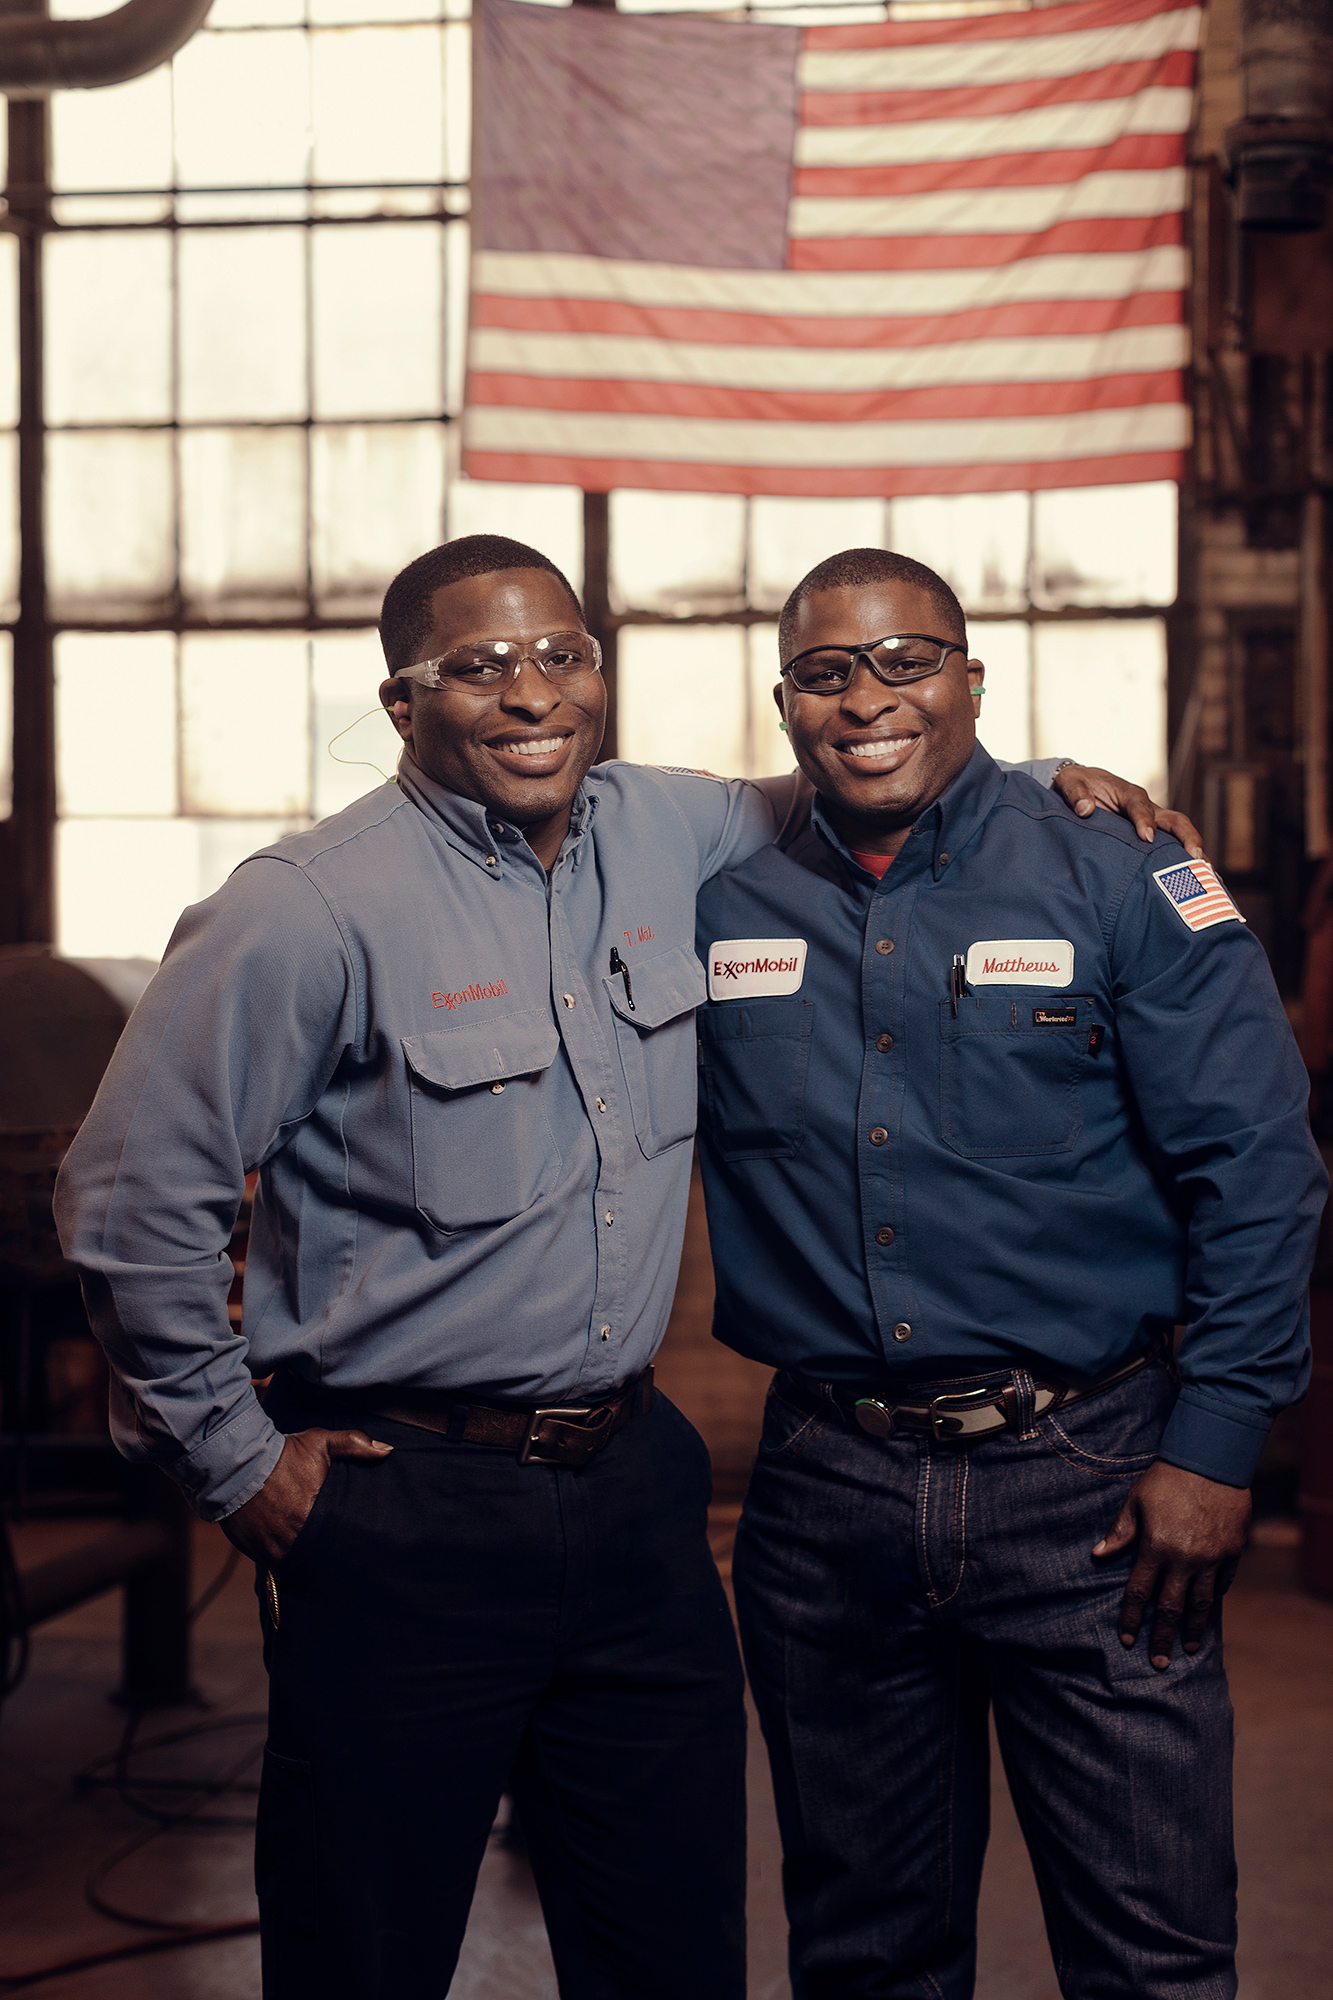 A pair of twins and Exxon Mobil employees based in Beaumont, Texas photographed by oil & gas photographer, Todd Spoth.